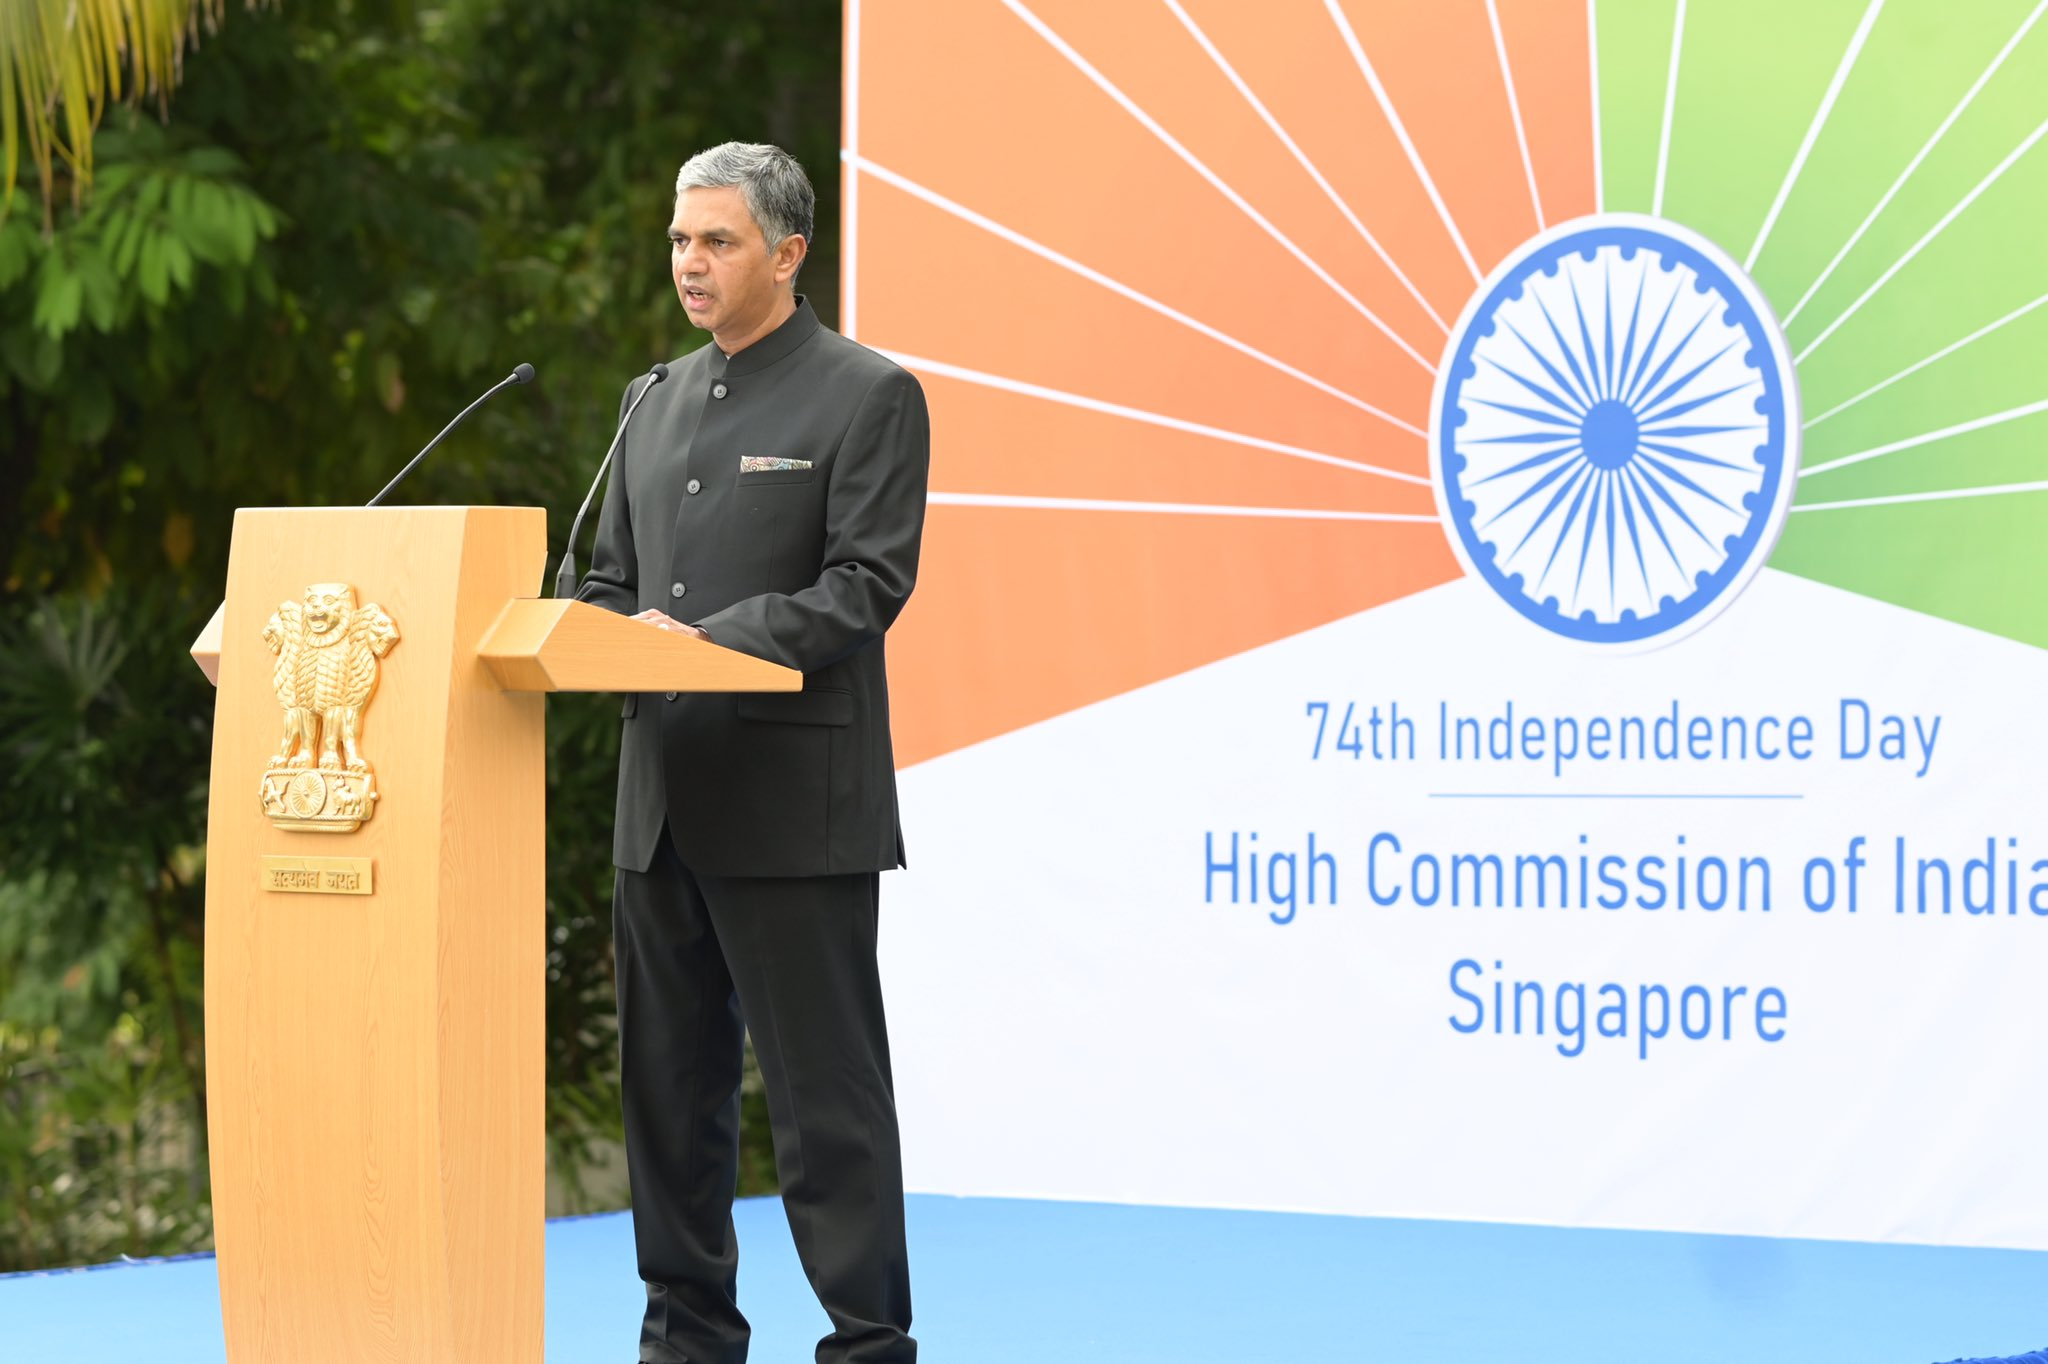 HE P Kumaran, High Commissioner of India to Singapore speaking during the Indiependence Day ceremony in Singapore. Photo courtesy: Twitter/@IndiainSingapor